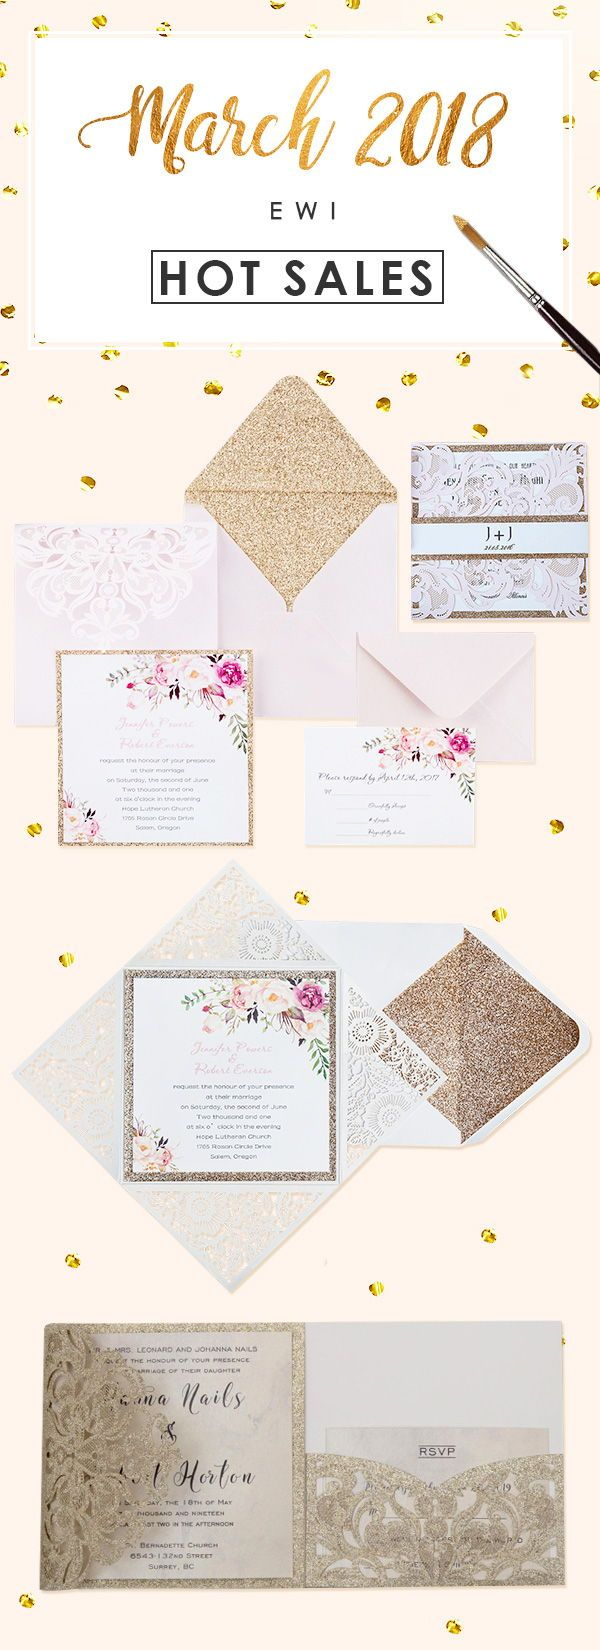 Top 20 Hotsale Wedding Invitations from EWI | Weddings, Wedding and ...